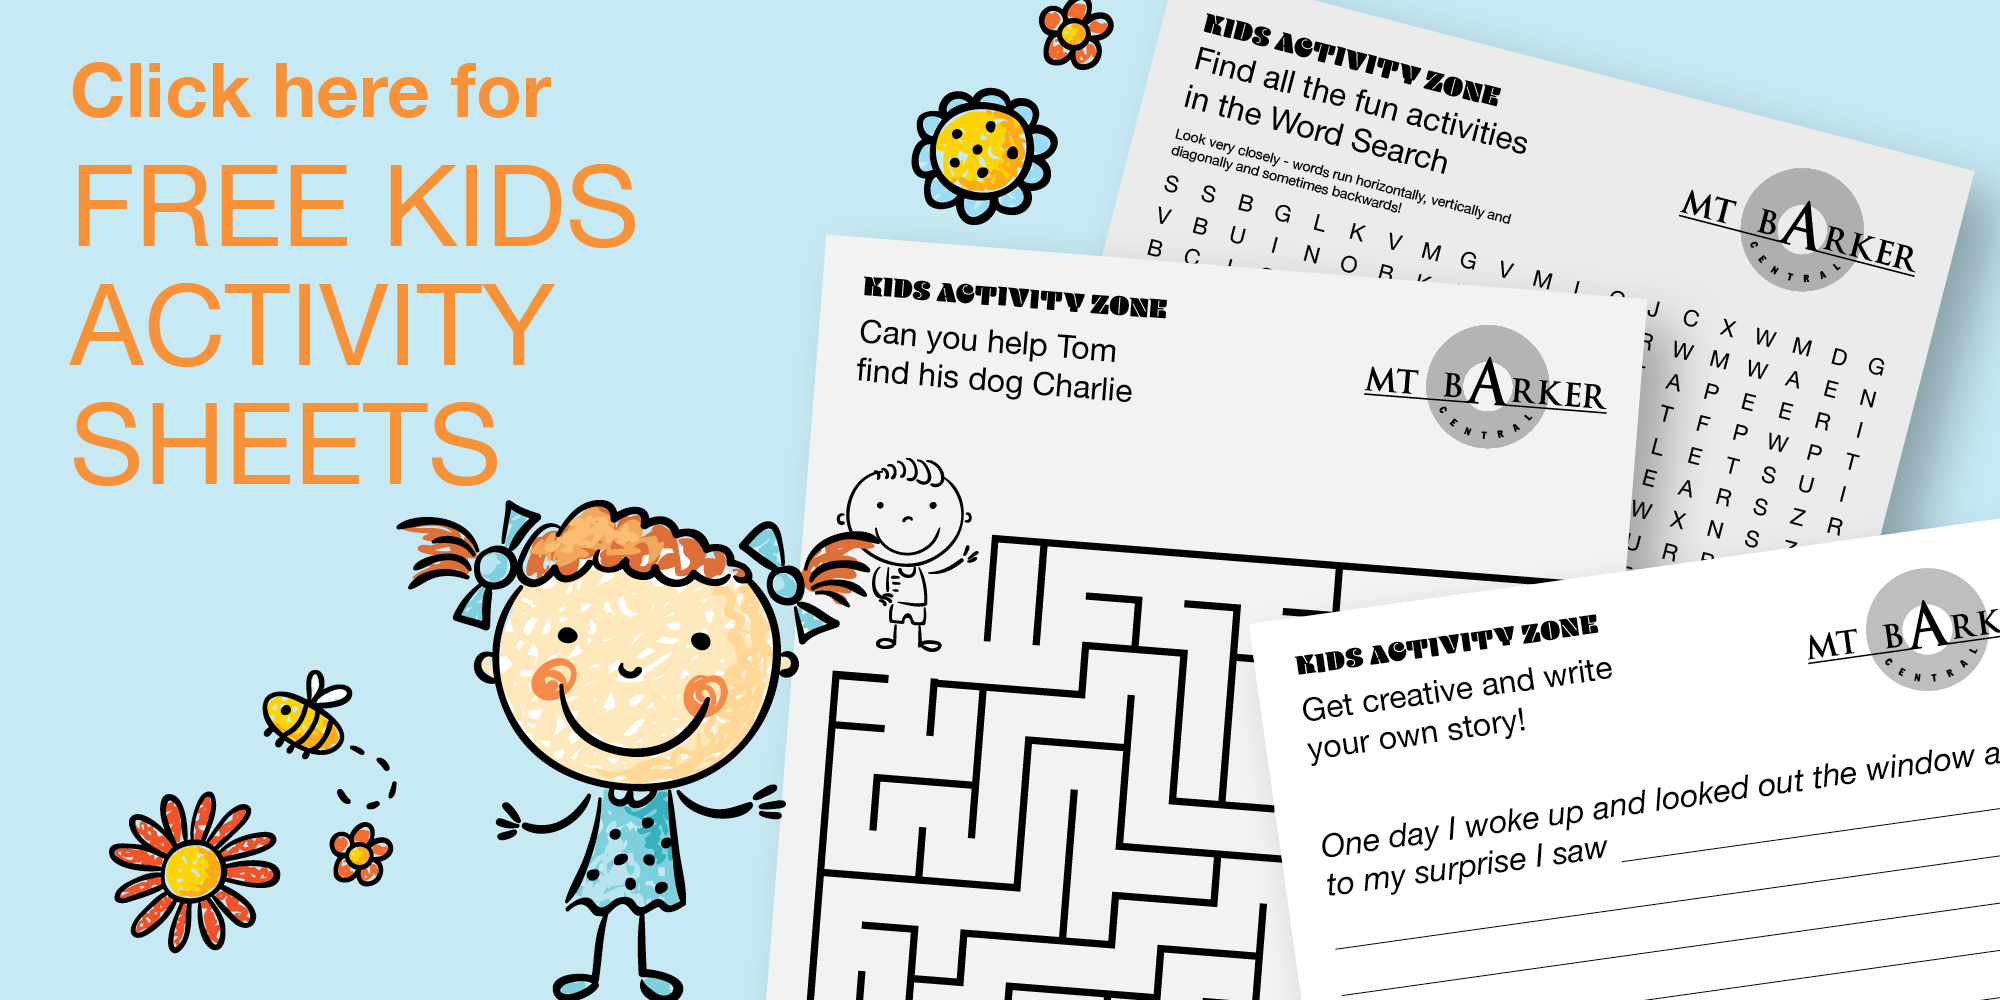 20 045 MBC School Holiday Web Tiles ACTIVITY